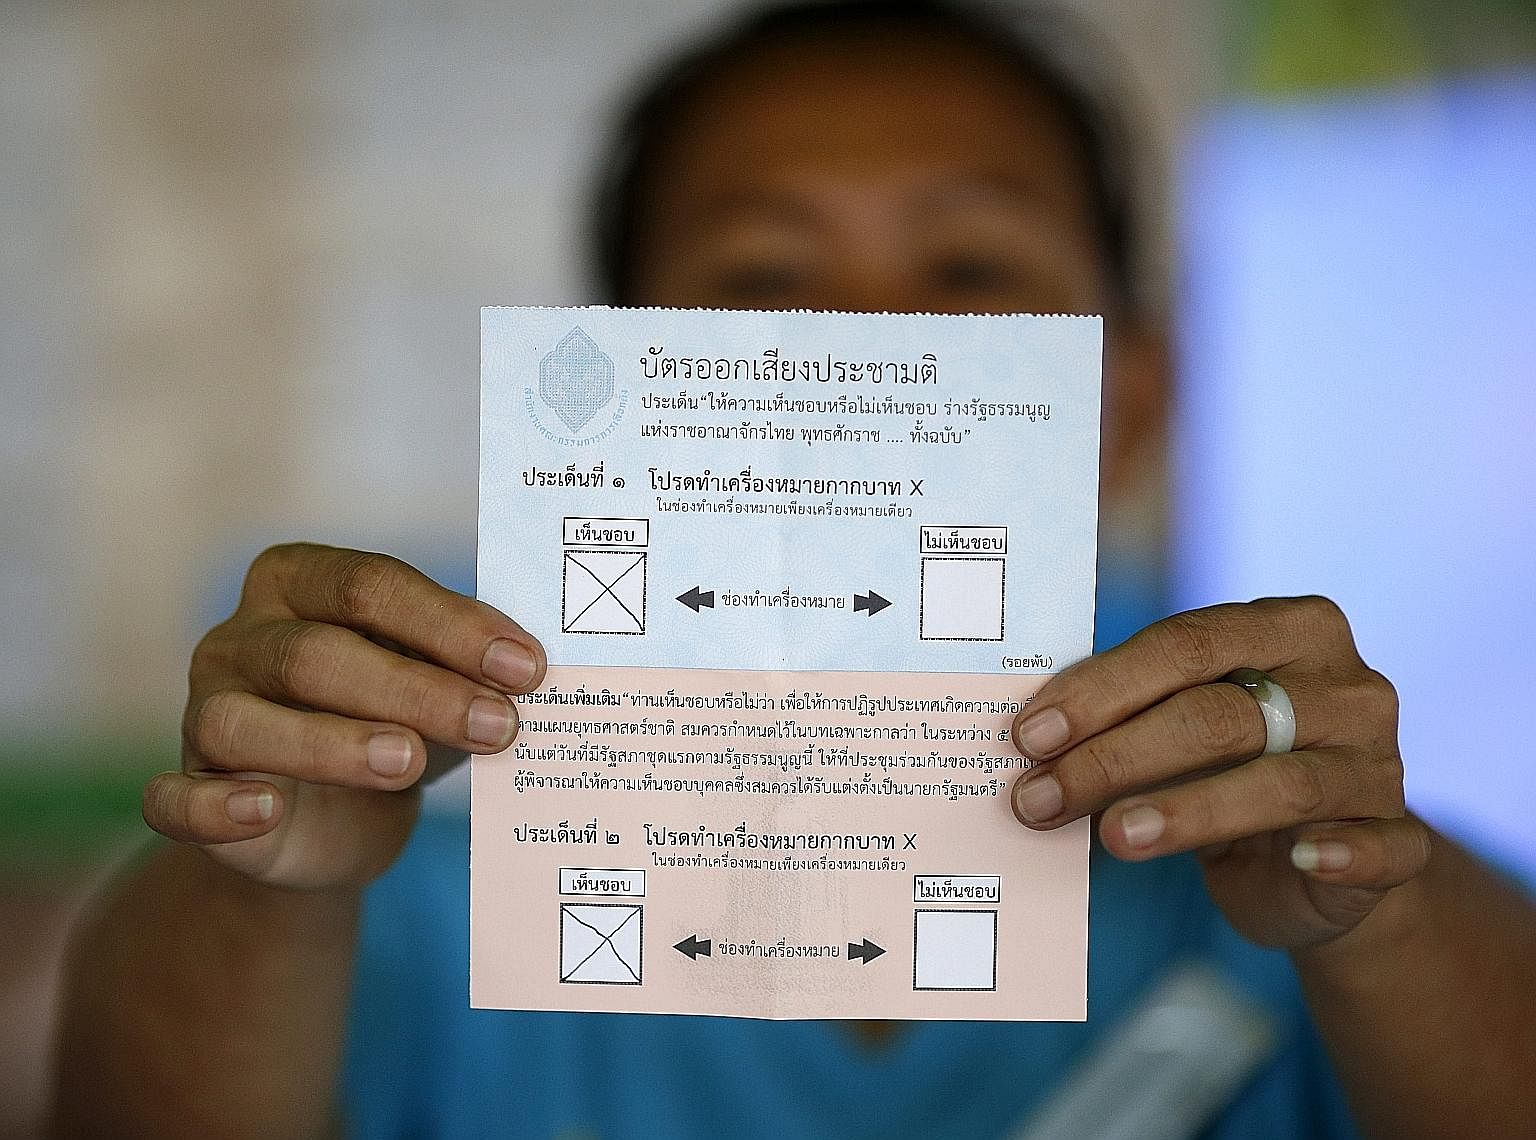 An election official shows a ballot paper in favour of Thailand's new draft charter. When adopted, this will be Thailand's 20th Constitution, and it will be harder to amend than the 2007 charter.